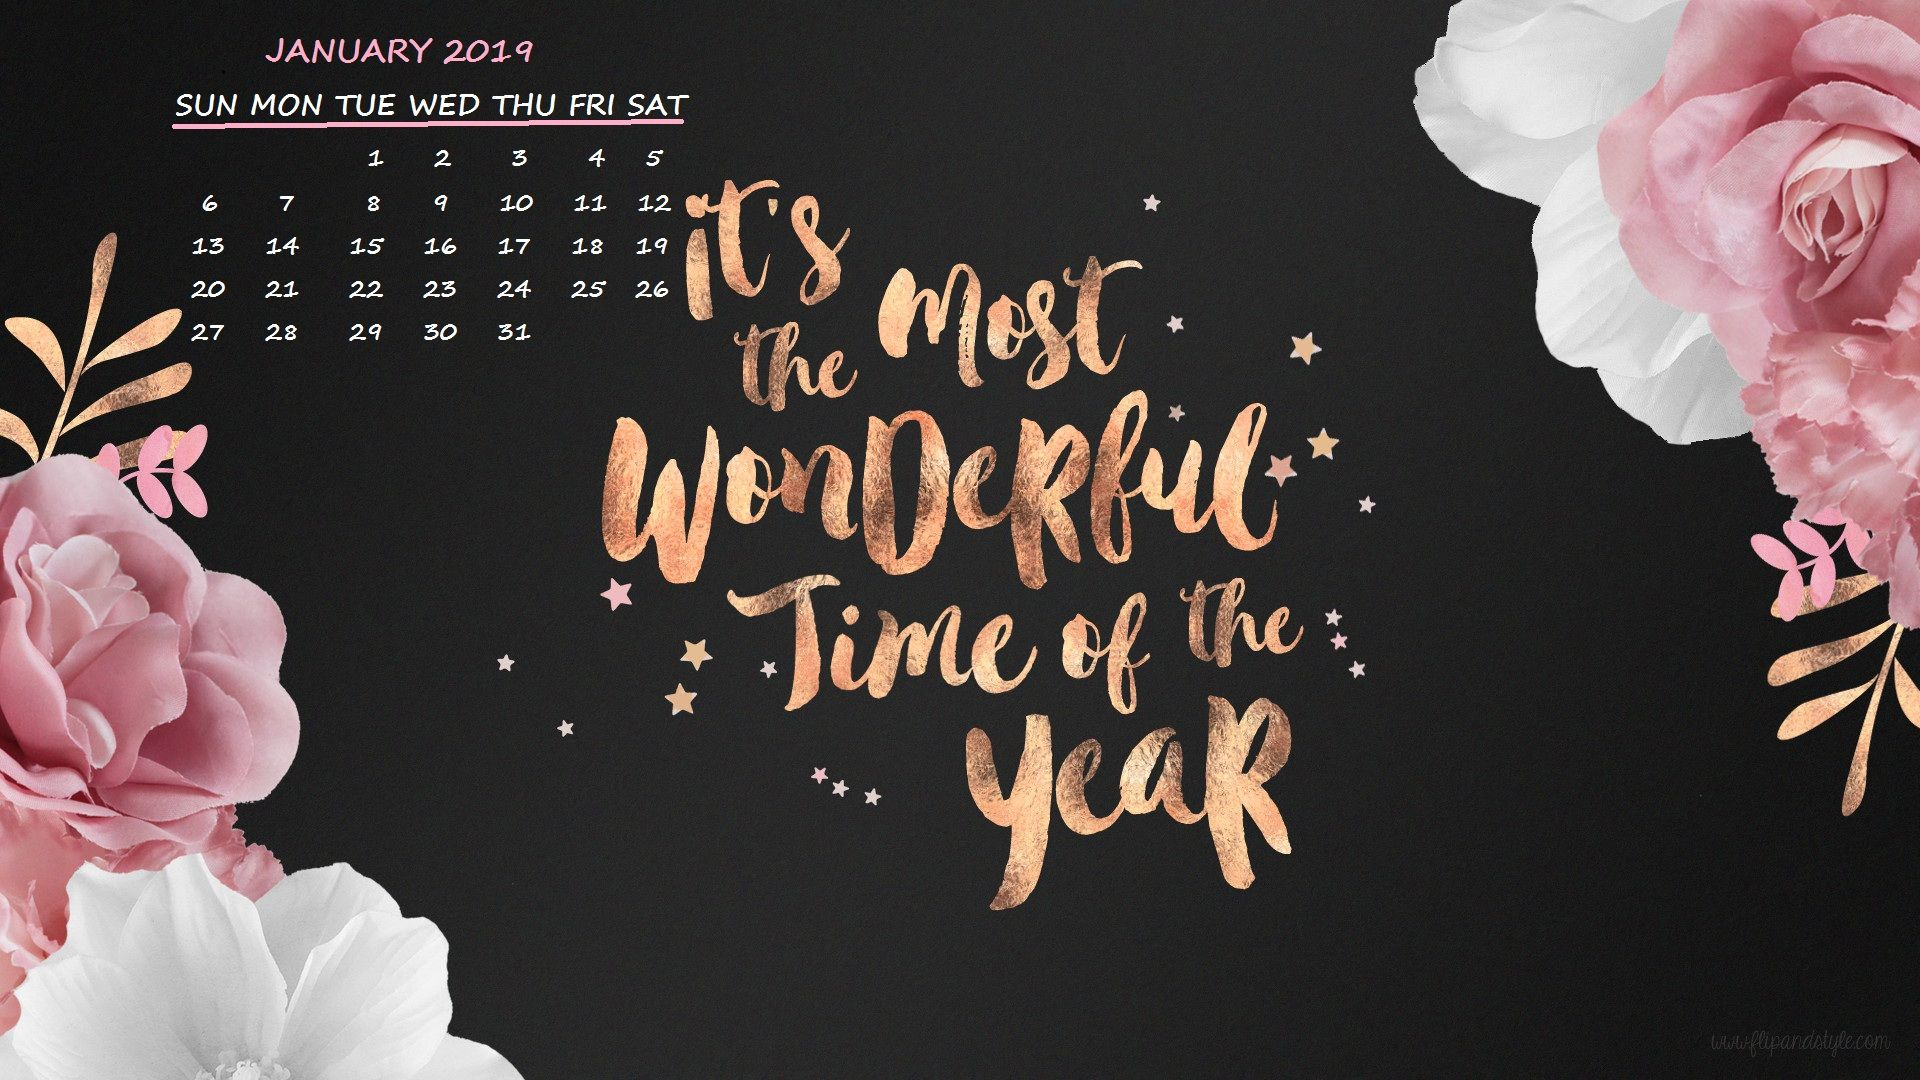 January 2019 Desktop New Year Calendar Computer Wallpaper Desktop Wallpapers Laptop Wallpaper Desktop Wallpapers Desktop Wallpaper Quotes